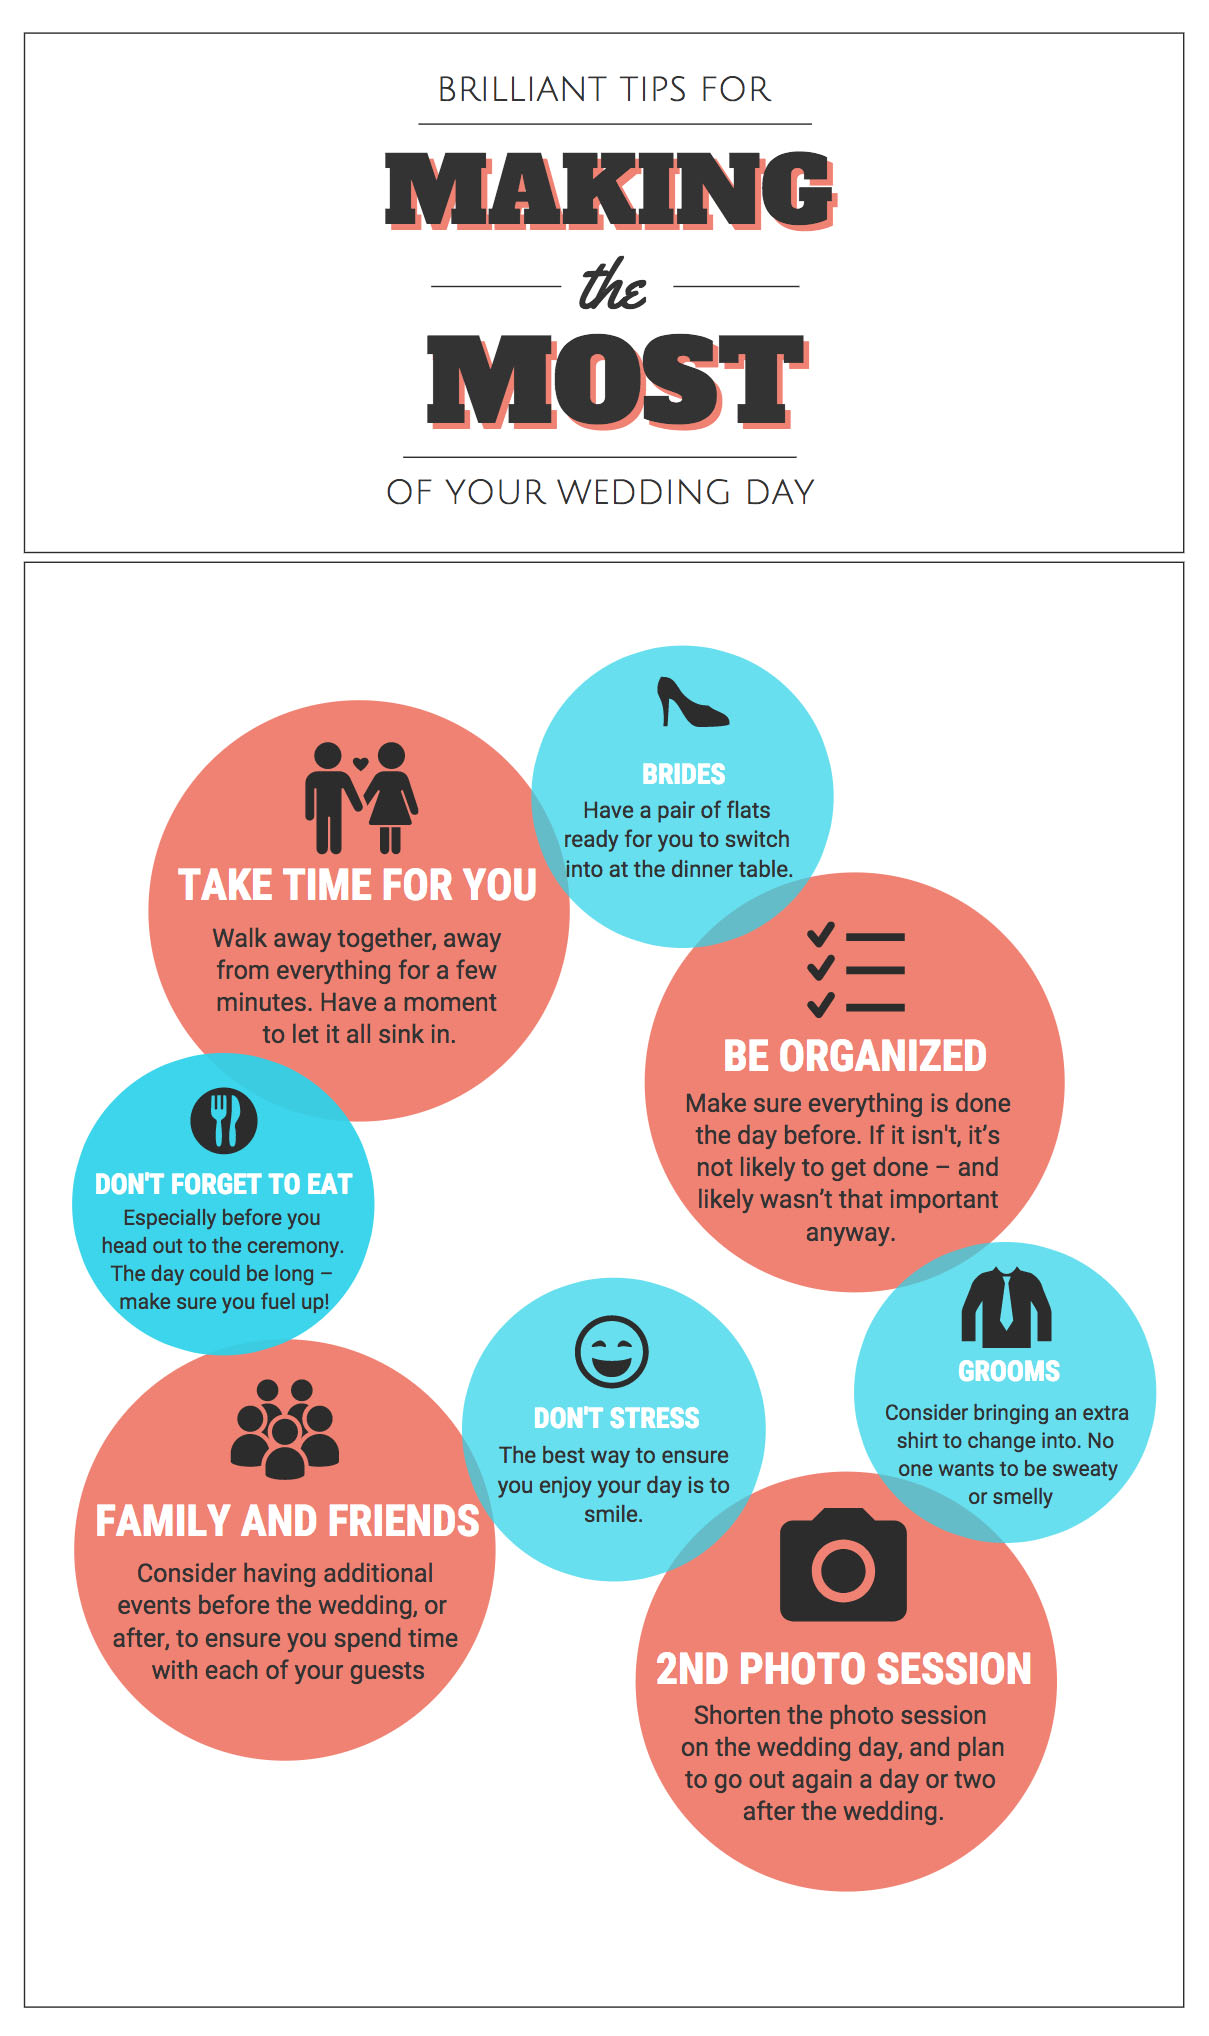 Brilliant Tips for Making the Most of your Wedding Day